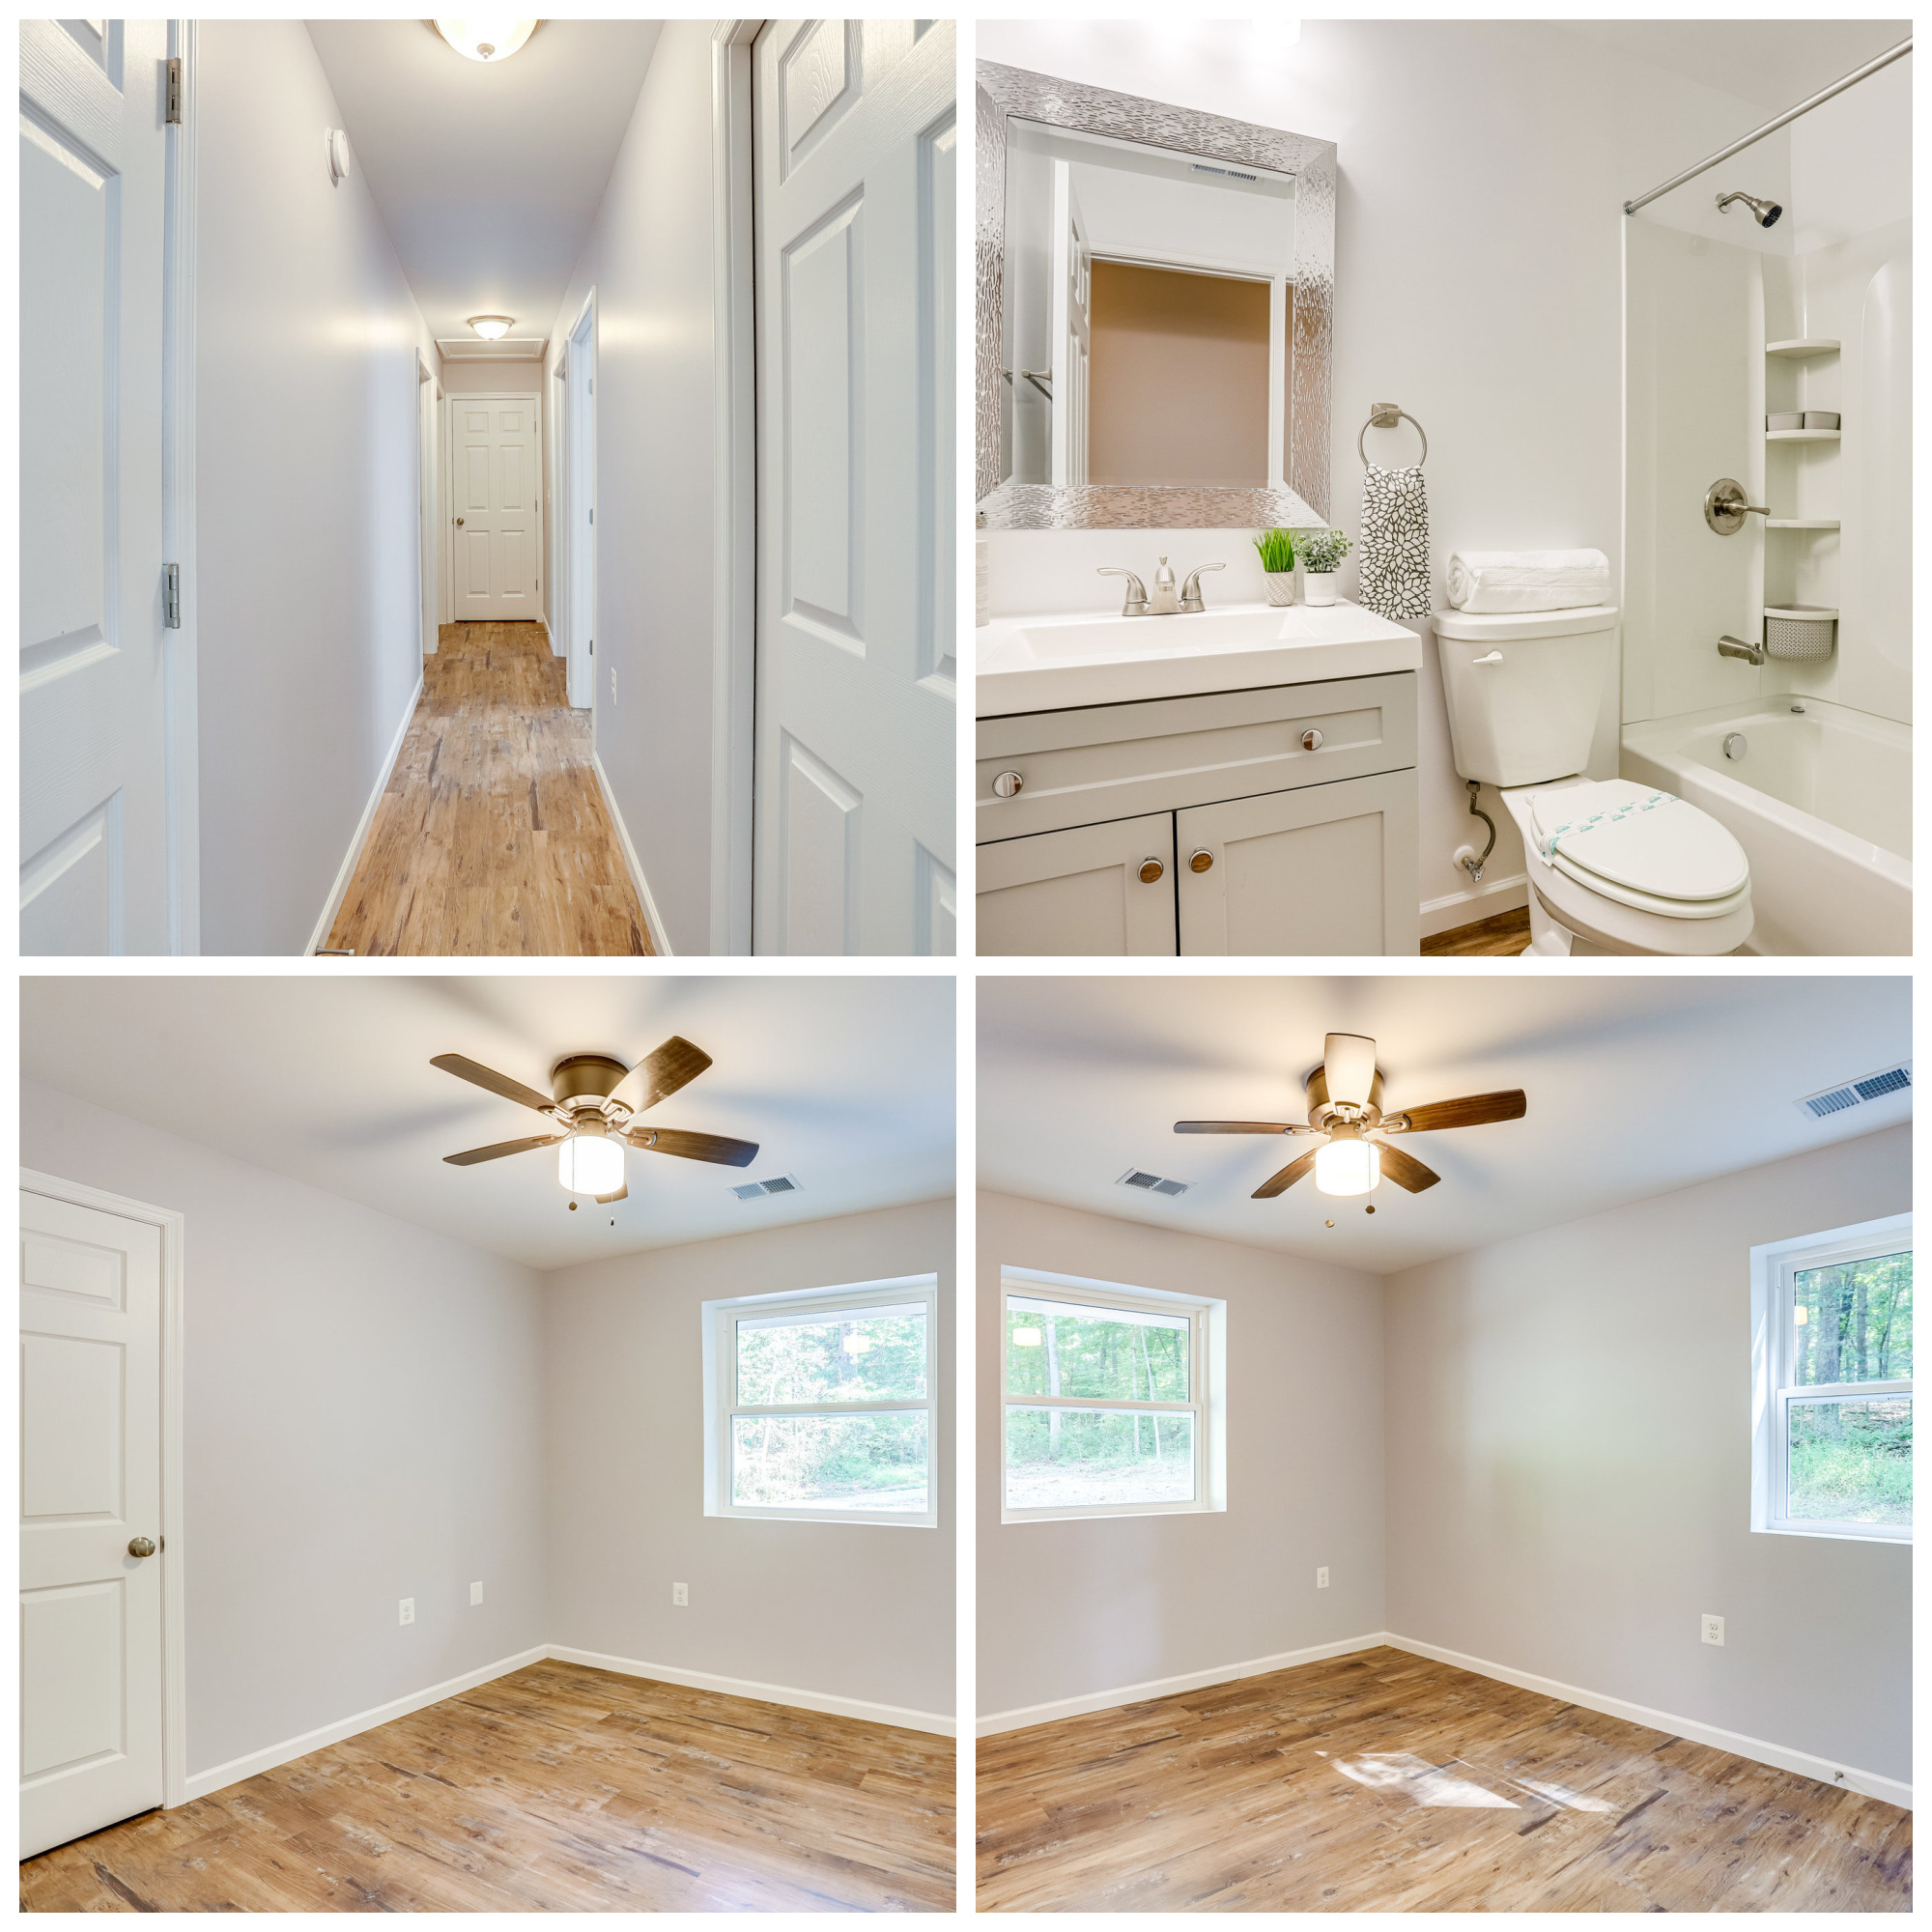 584 Aaron Mountain Rd, Castleton- Hall Bathroom and Additional Bedrooms